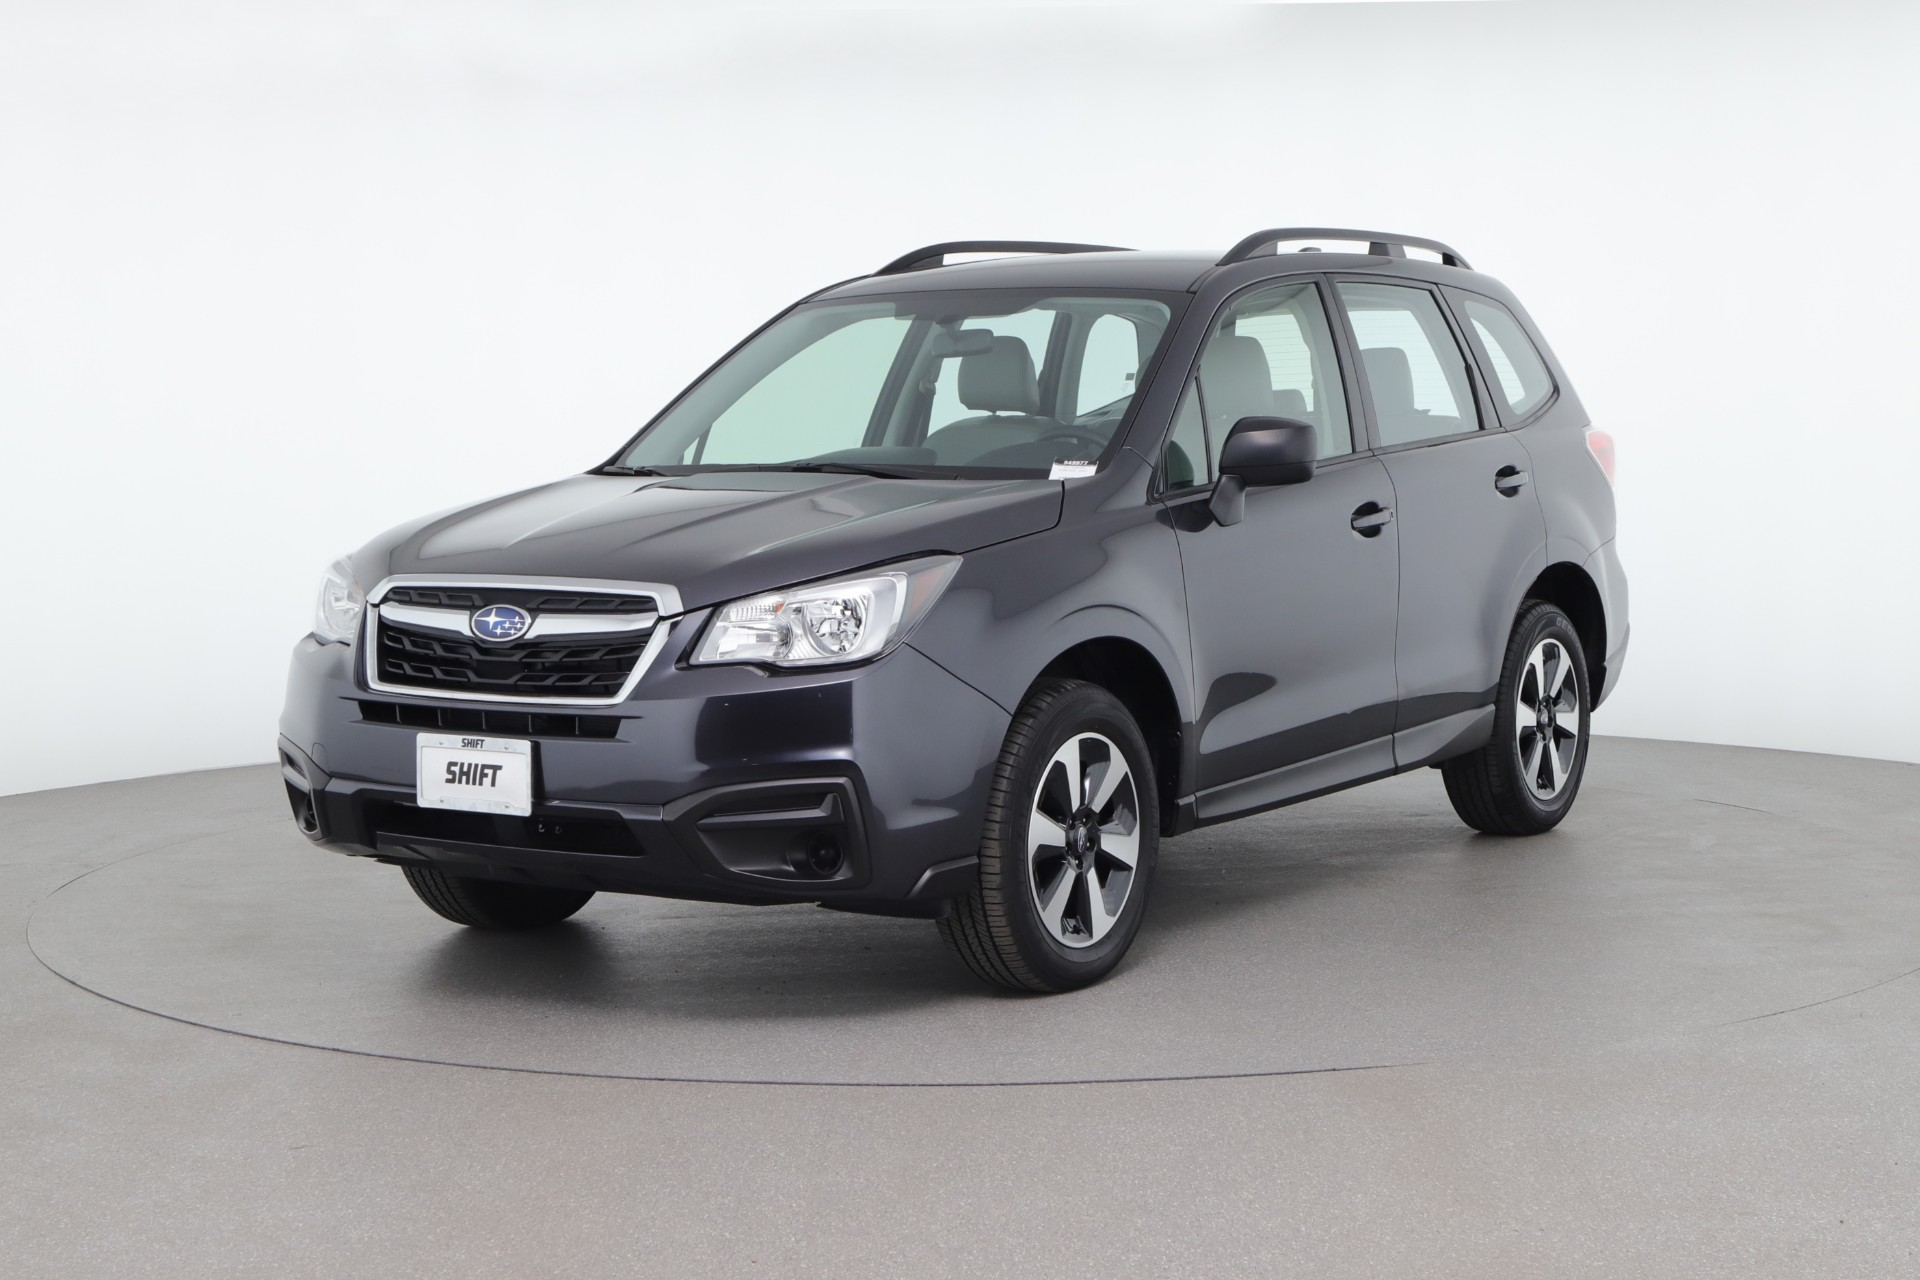 How Much is a Subaru Forester?